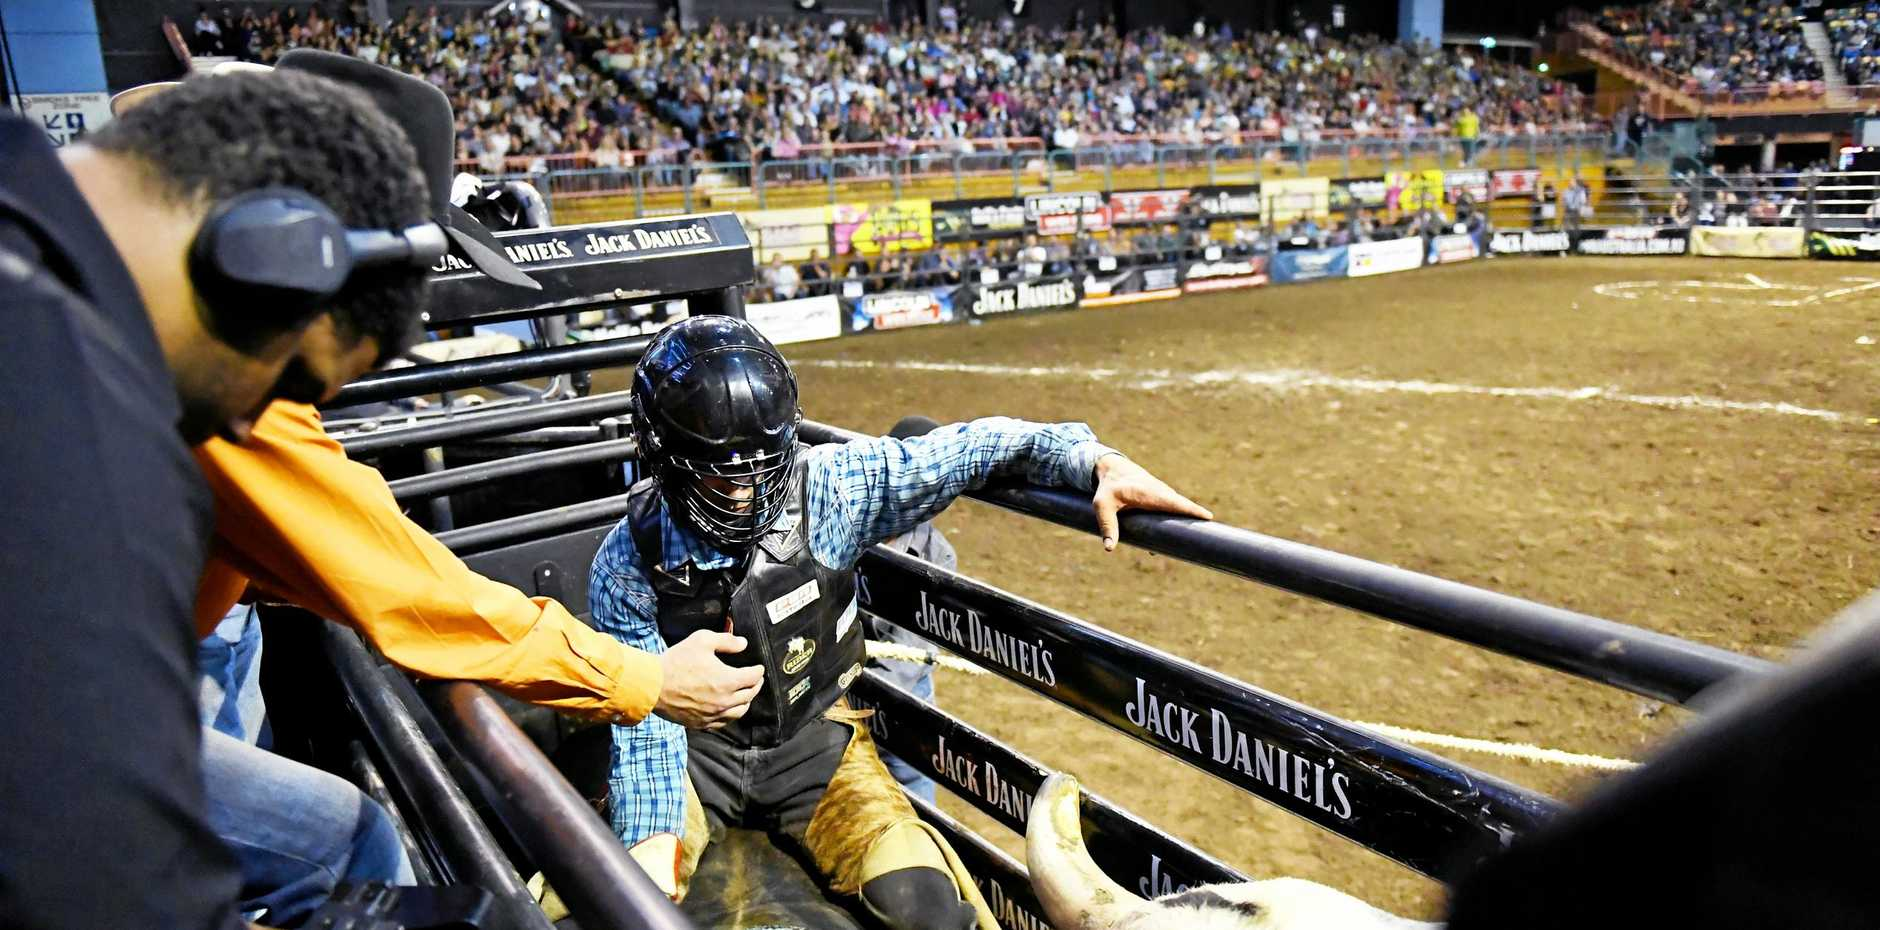 GREAT SHOW: The PBR will take the best cowboys and bulls in the business to Cairns.